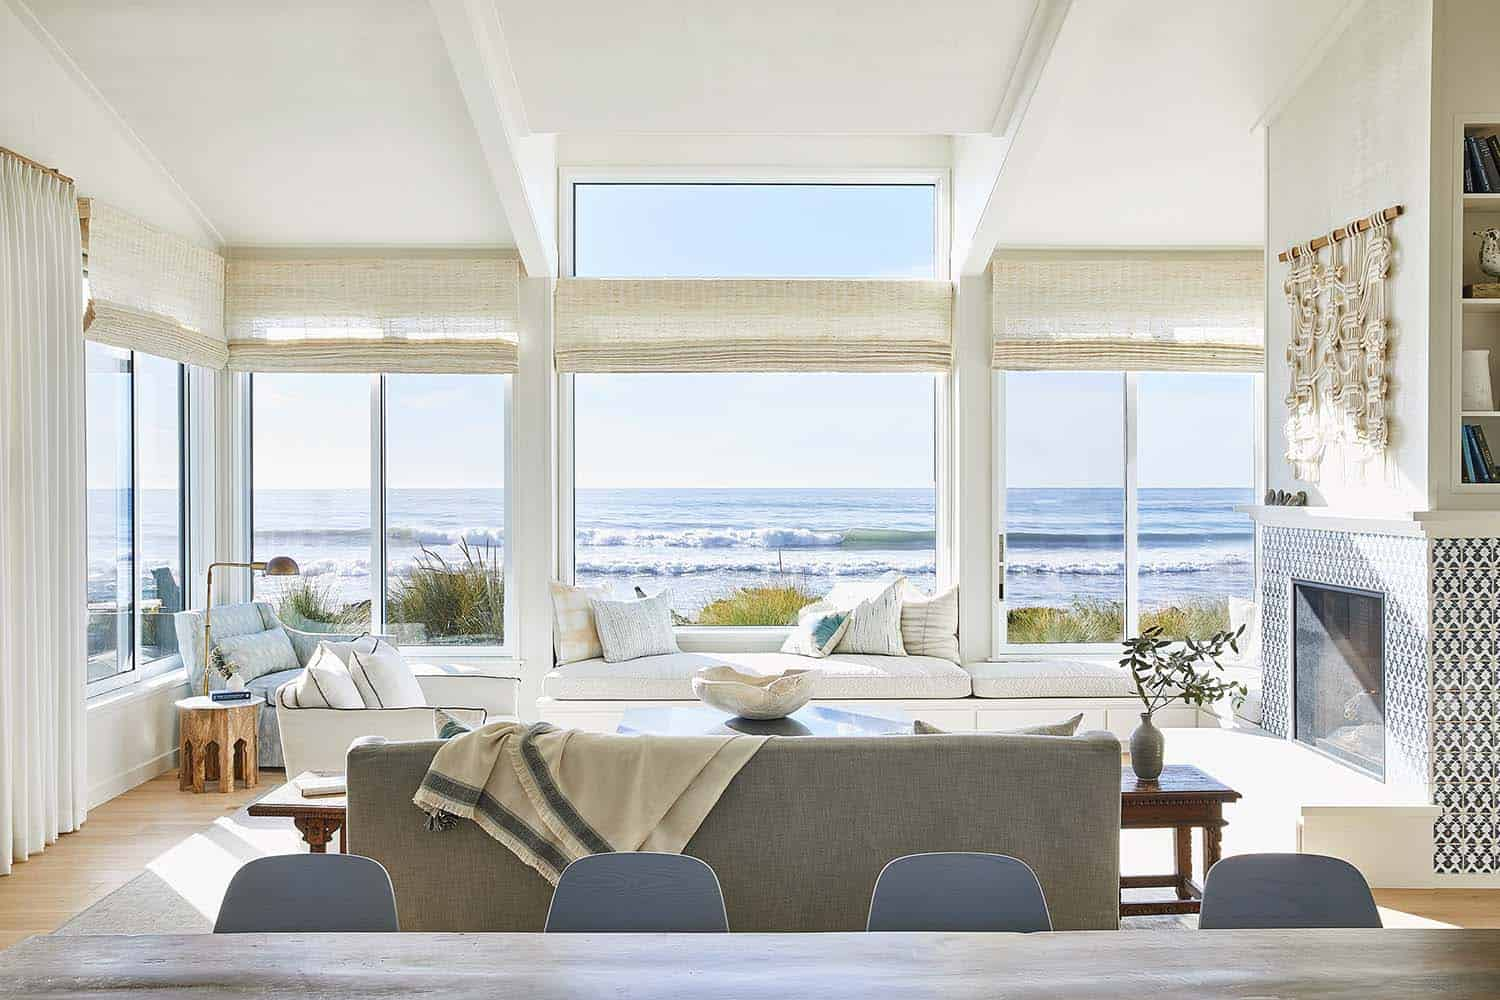 Relaxing seaside getaway in California with a Scandinavian vibe